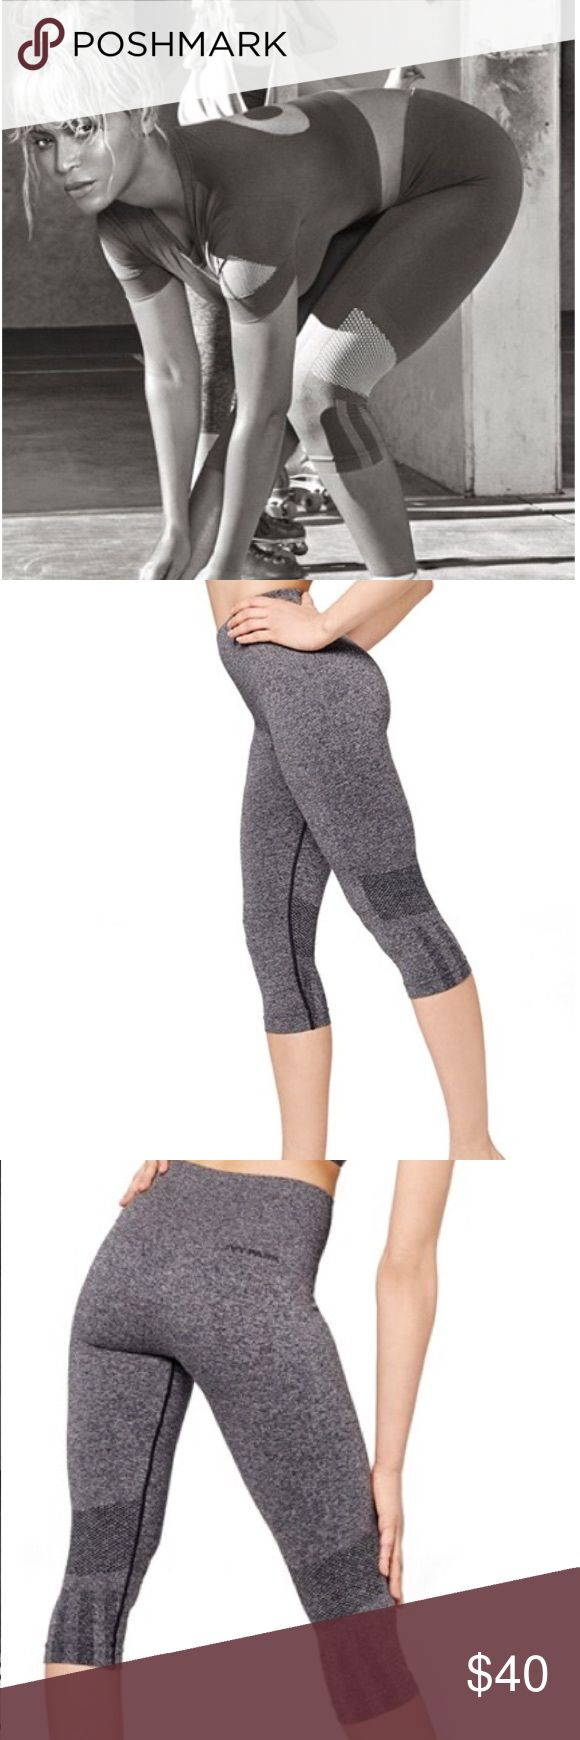 """Ivy Park (Beyoncé) Seamless Capri Leggings Capri-length w/ ventilating knit mesh at knees made from a technical stretch fabric with sweat-wicking & quick-drying properties. A compression-ribbed waist supports and conforms to the body and can be folded down for a low-rise fit that reveals a stripe accent 72% polyester, 24% nylon, 4% elastane. Machine wash cold, dry flat. Inseam 18"""". Waist 11"""" across laying flat unstretched. Never worn, I find always go for my black ones,so these are still…"""